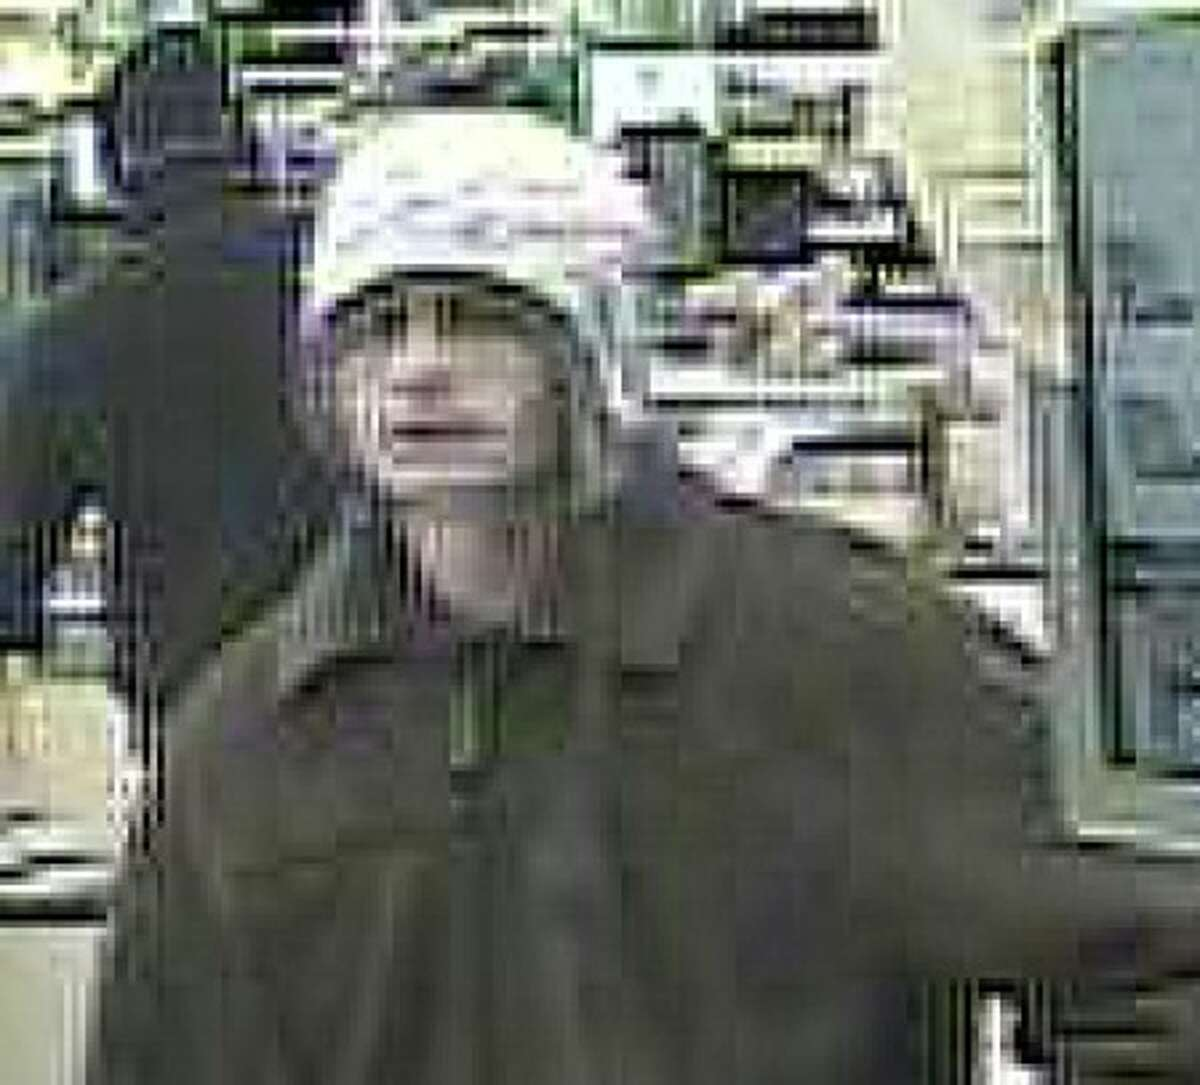 Police search for suspect in Stop & Shop theft